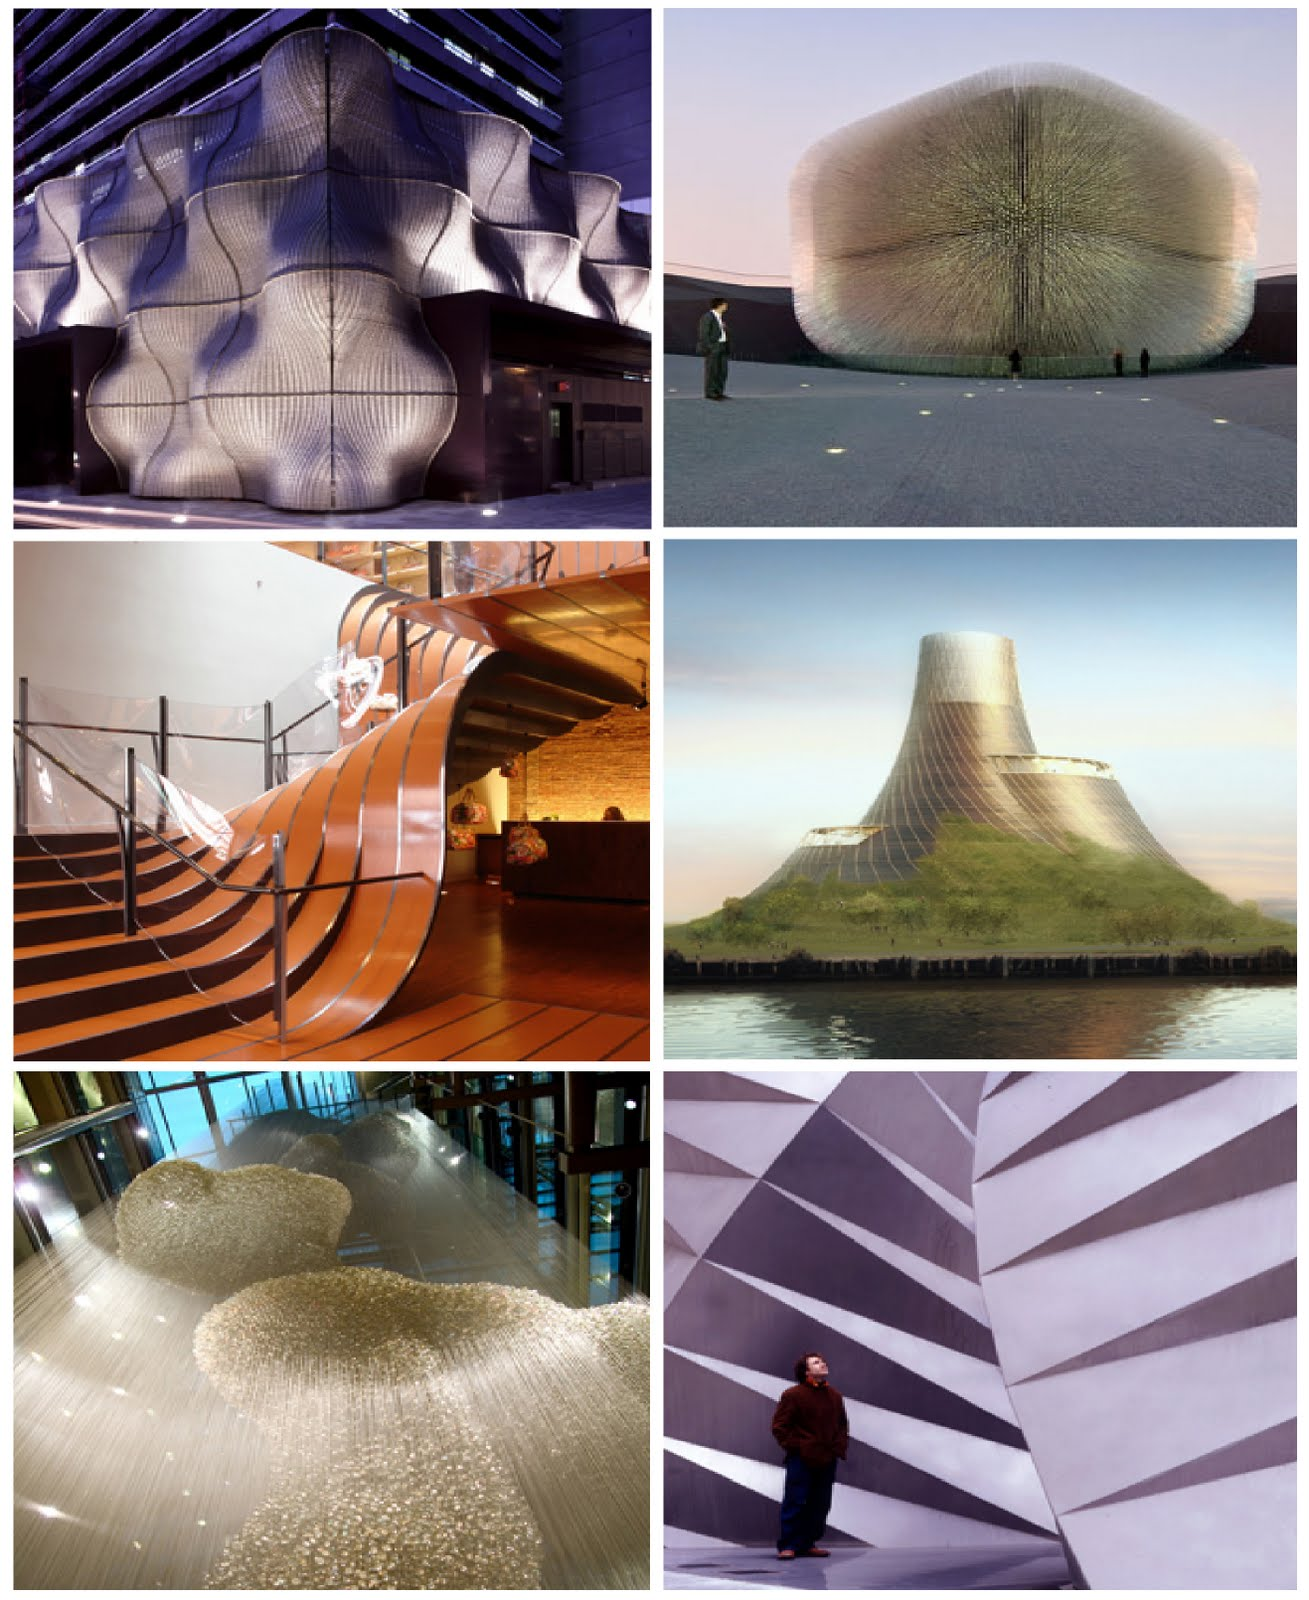 Bkhdesign Thomas Heatherwick Love His Work